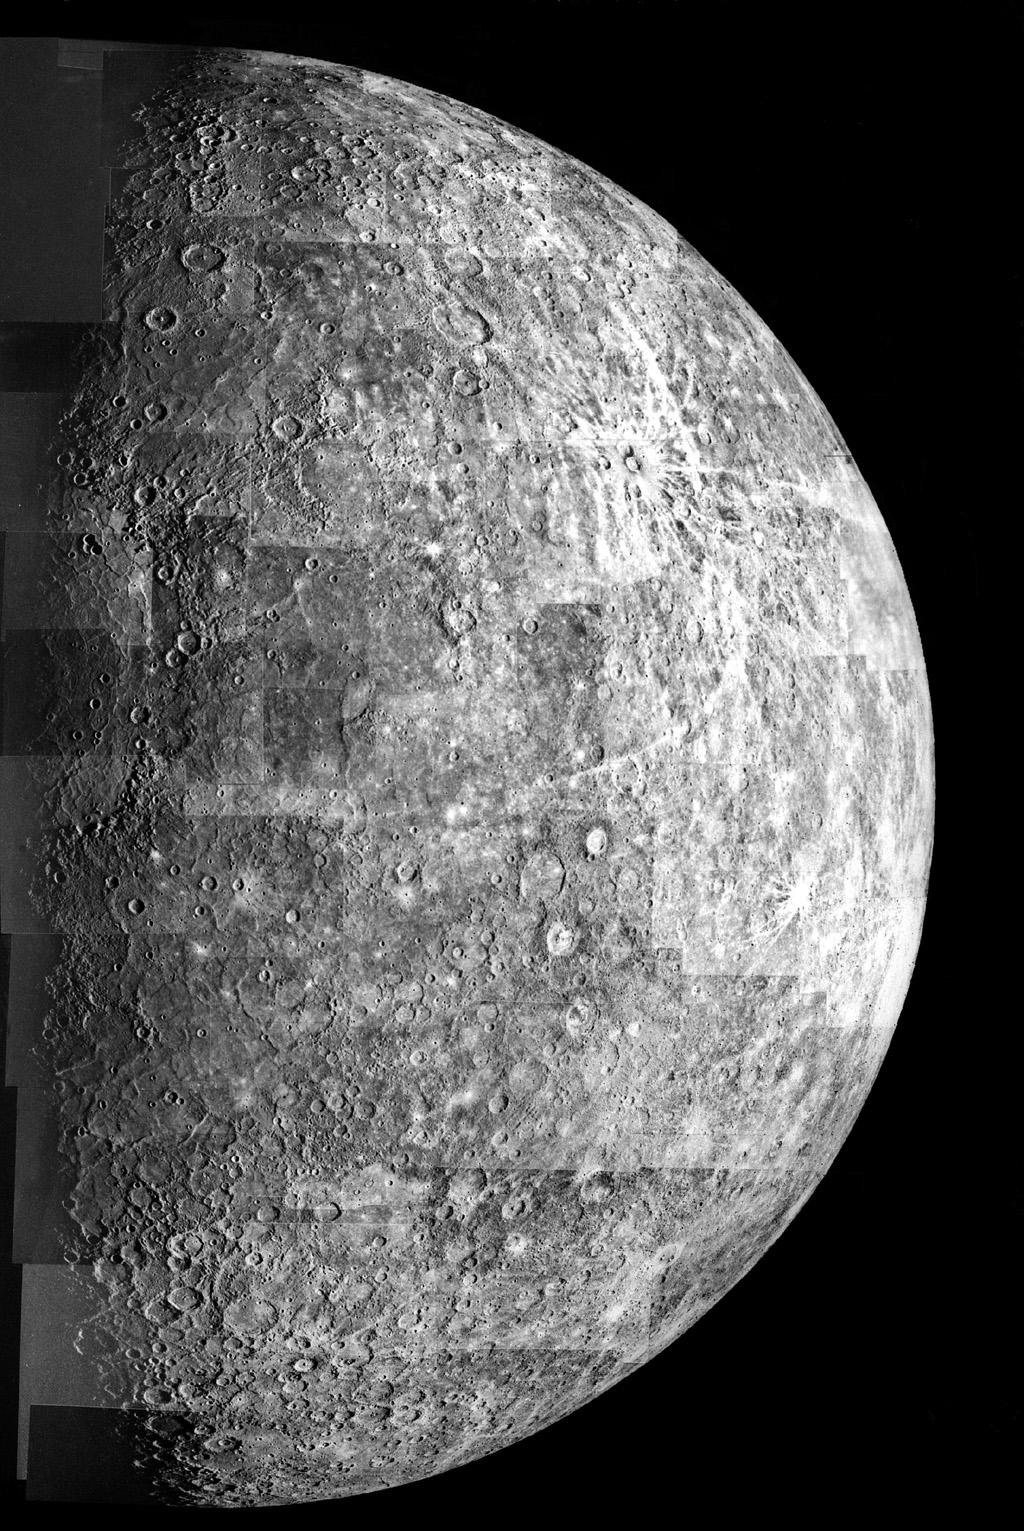 After passing on the darkside of the planet, NASA's Mariner 10 photographed the other, somewhat more illuminated hemisphere of Mercury. The north pole is at the top, two-thirds down from which is the equator.